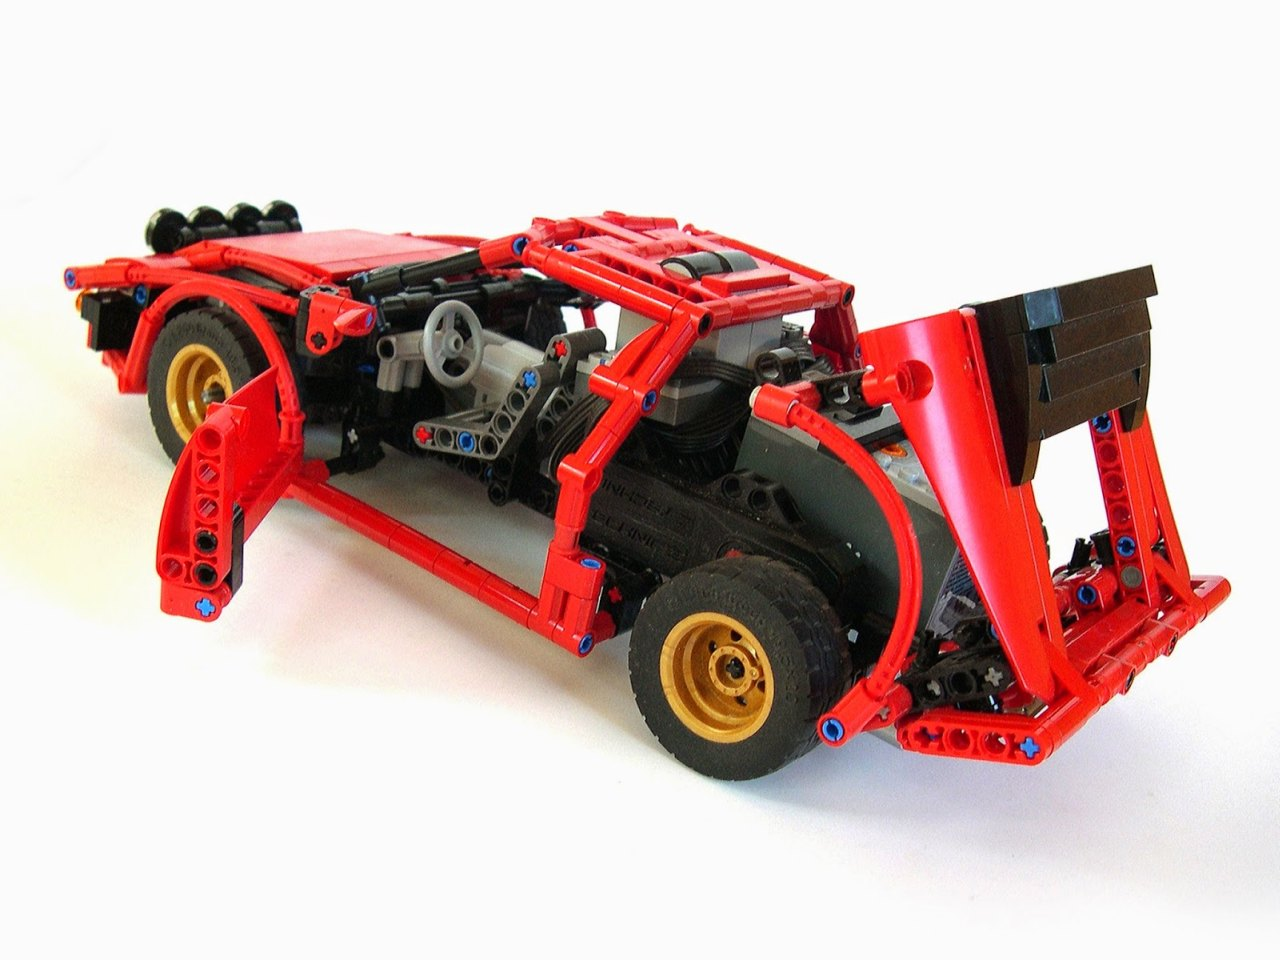 traxxas fastest car with Electric Rc Car Motors on Rcedition as well Traxxas Xo 1 L Auto Radio andata Pi Veloce Del Mondo likewise Traxxas Xo 1 Supercar Bl Mit Tsm Trx64077 3 moreover 6 Of The Best Electric Rc Car besides Traxxas Trx 4 Scale Trail Crawler.